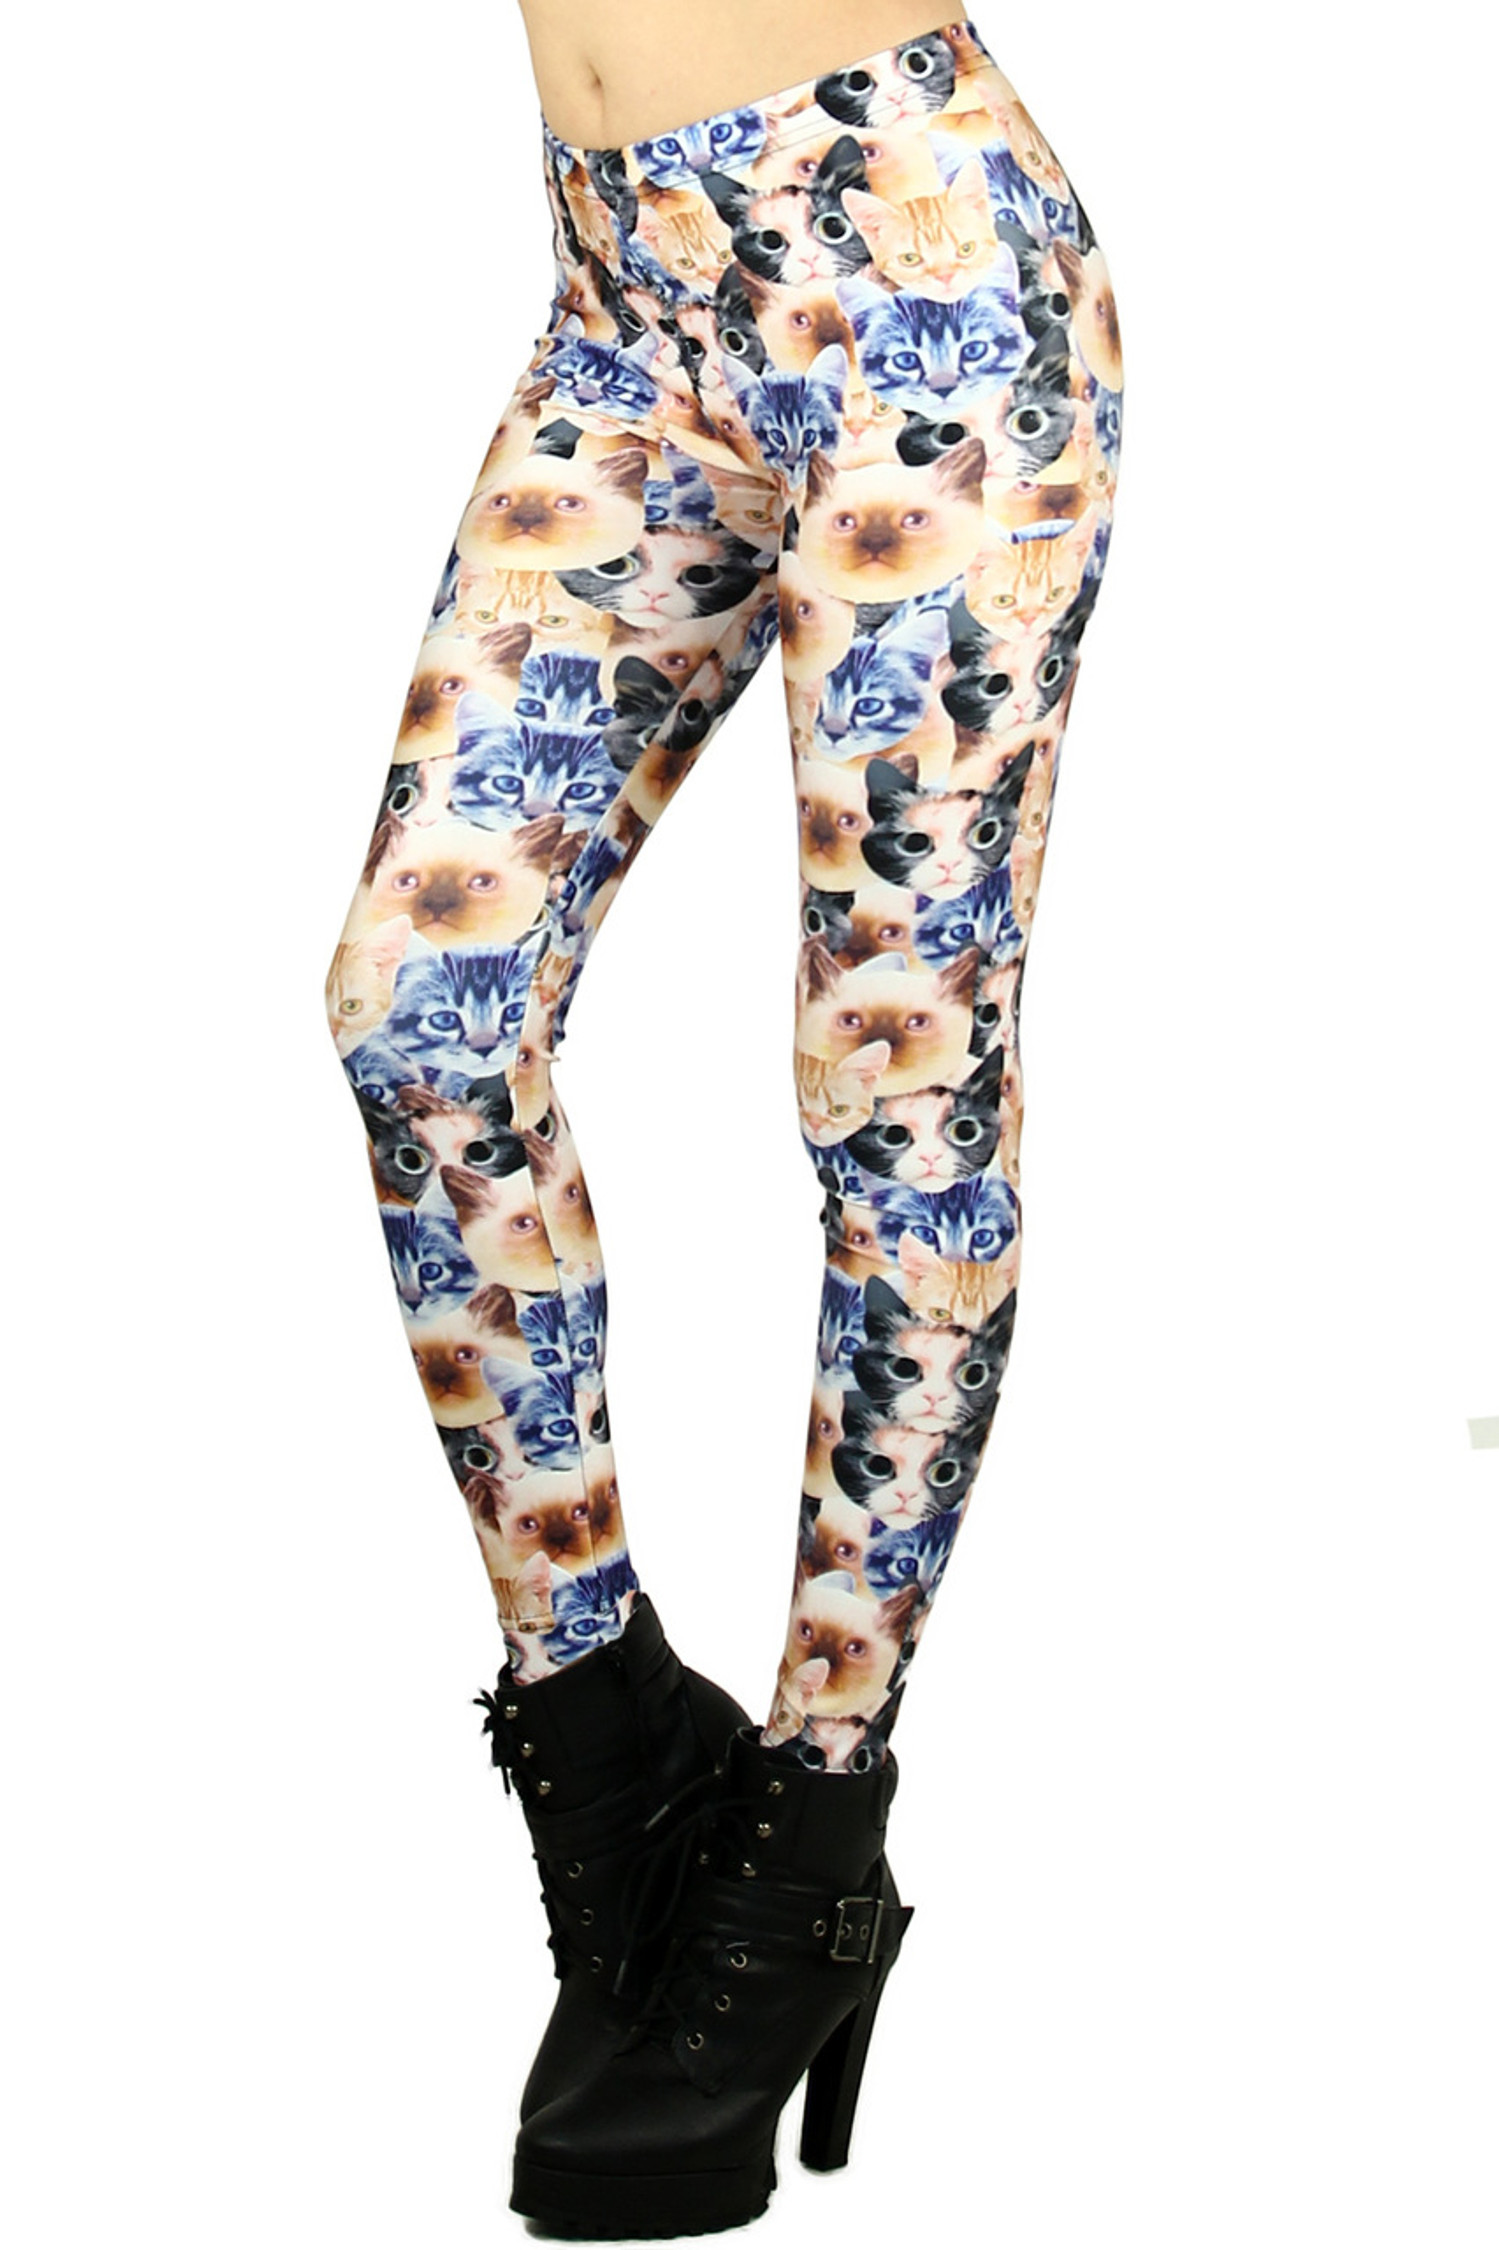 Kitty Cutie Leggings